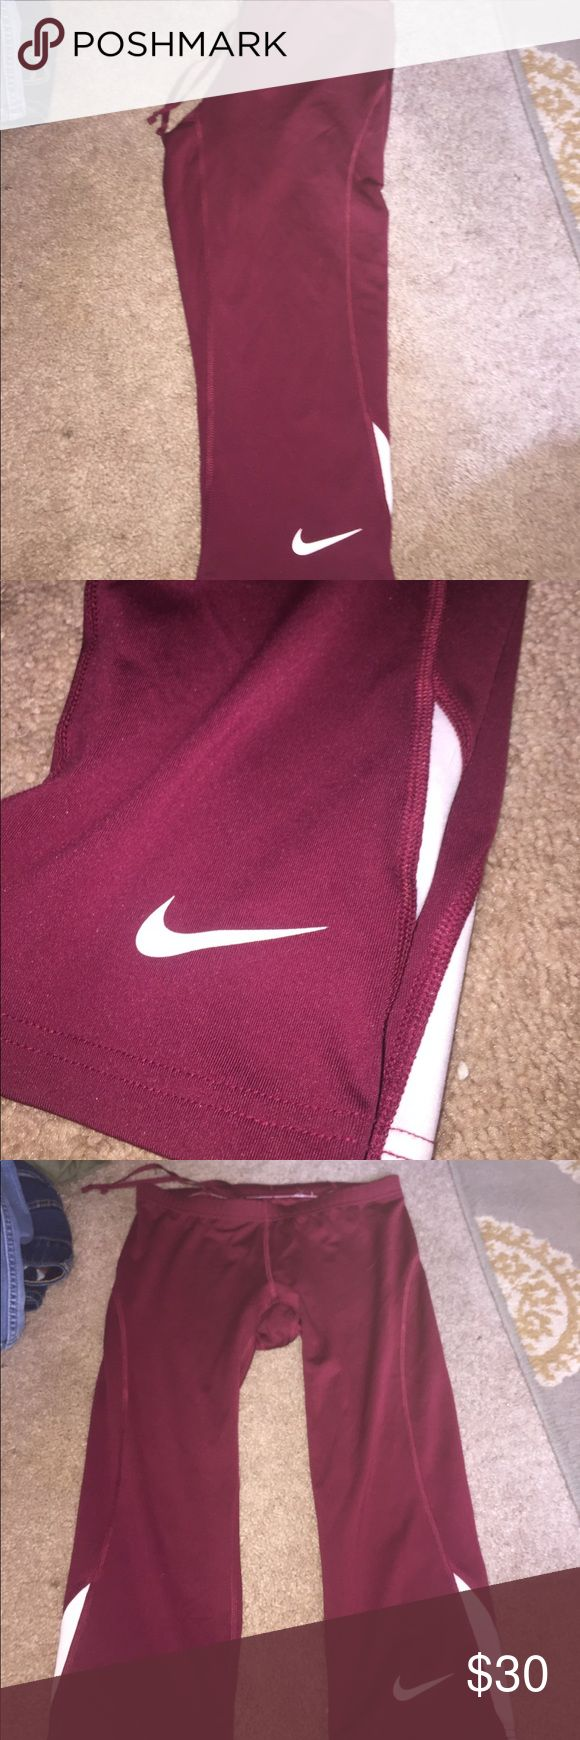 Nike running pants Disclaimer : Capri length Great condition. Maroon athletic pants wth white accents. Very minimal fraying Nike Pants Leggings